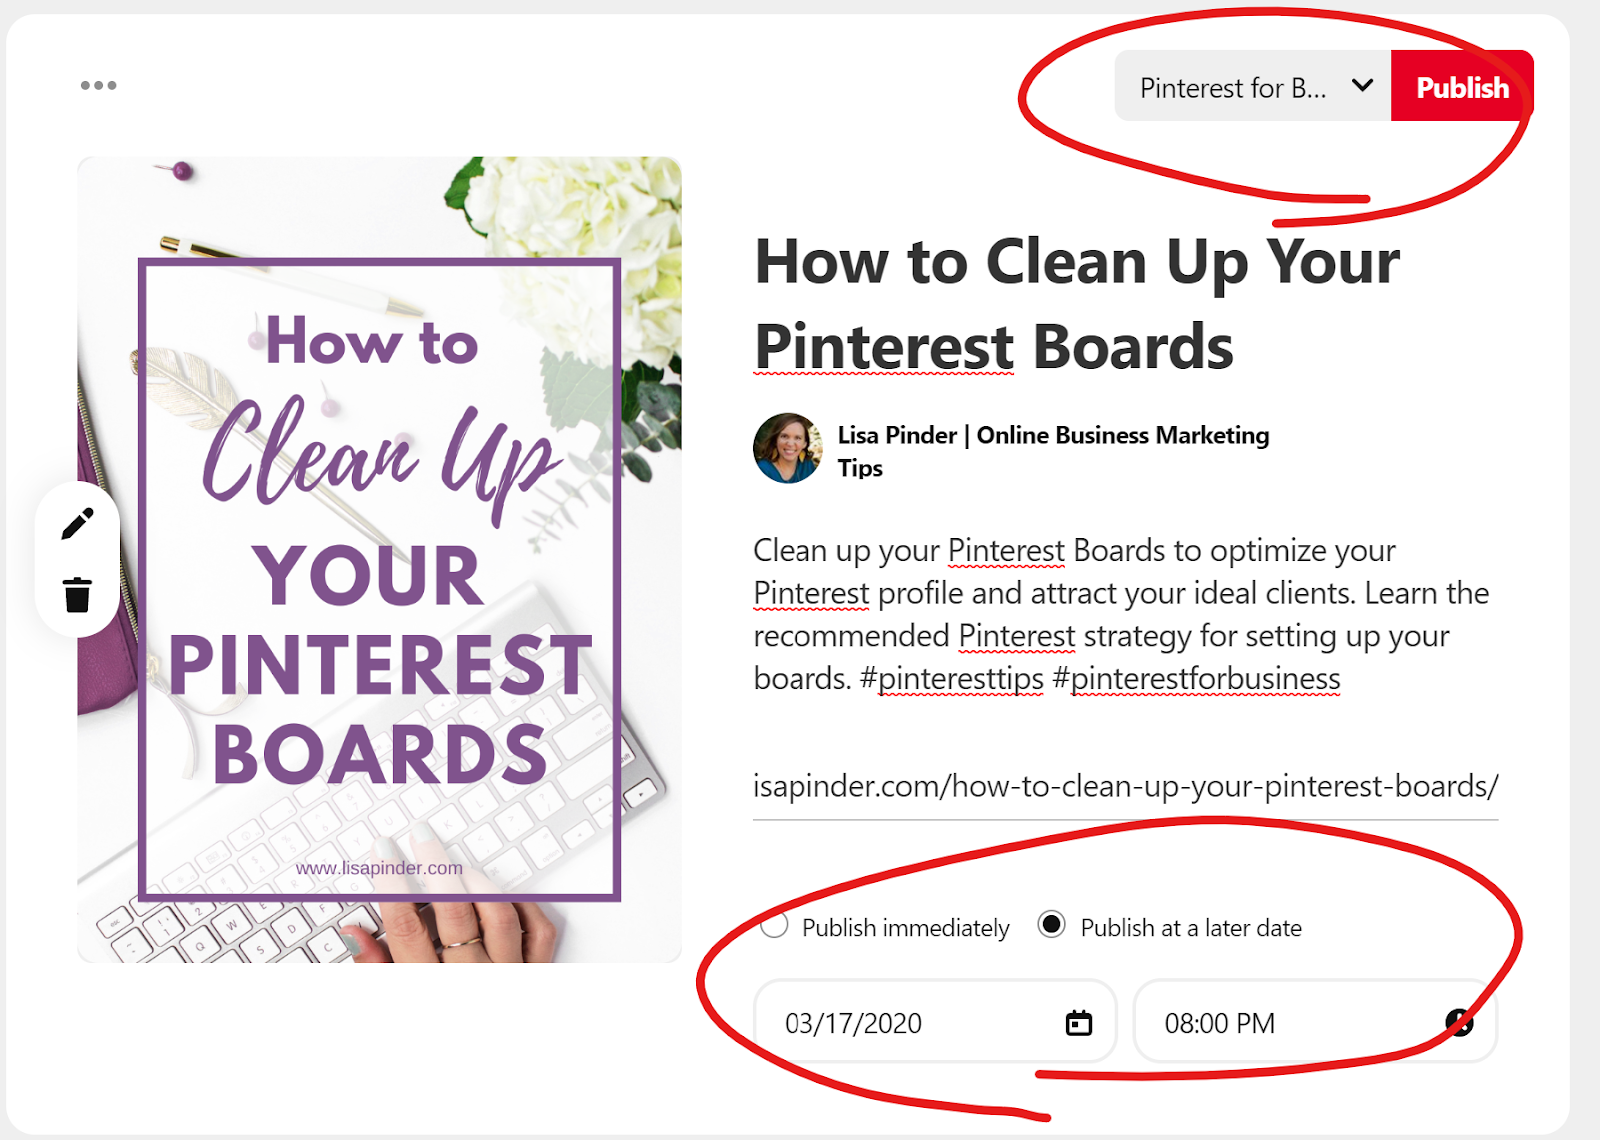 How to Schedule Pins on Pinterest for a later date